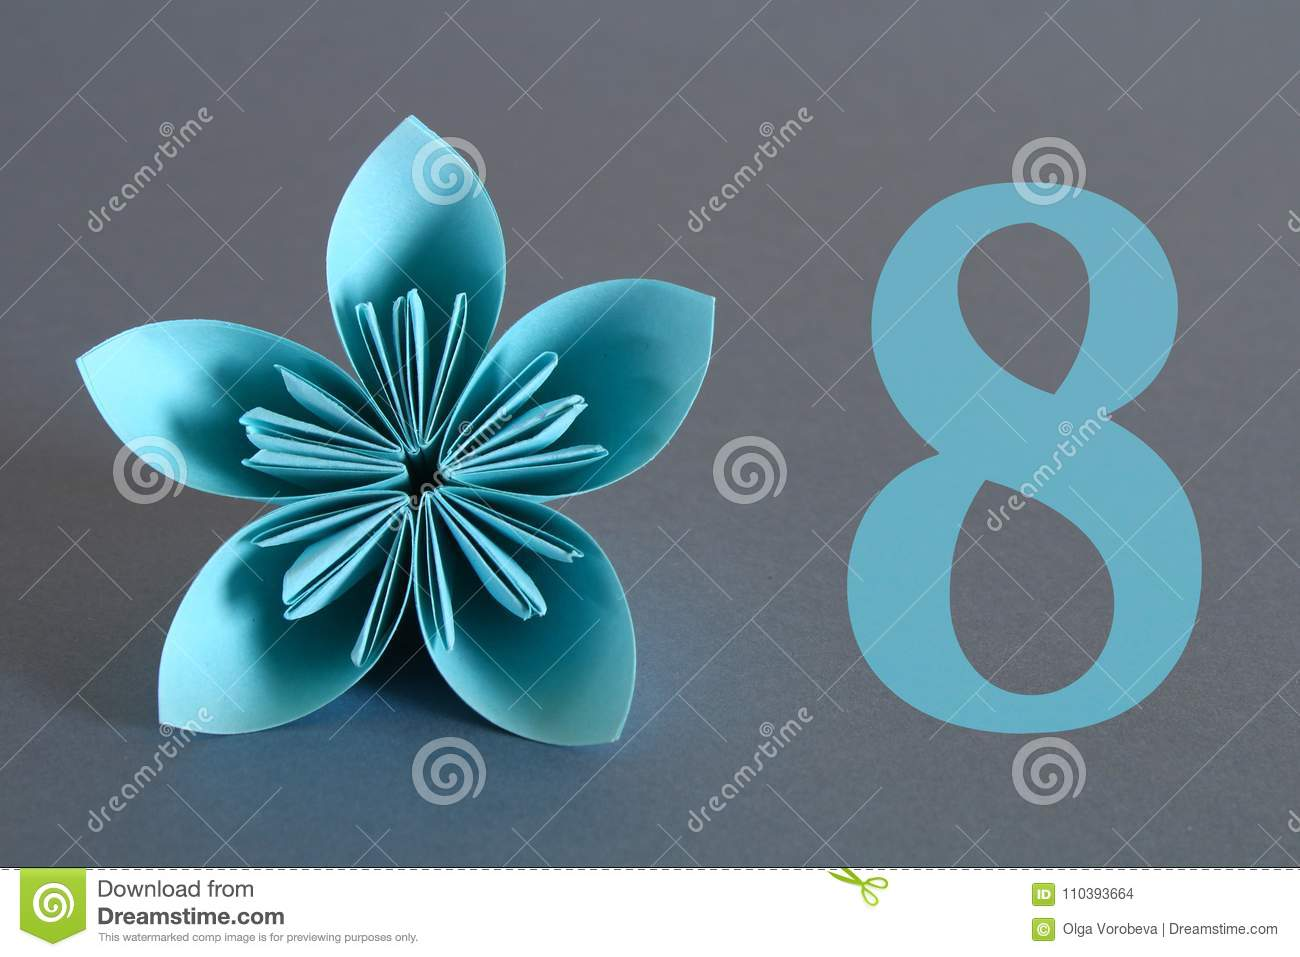 Paper Flower From Origami With The Number Eight On A Gray Background